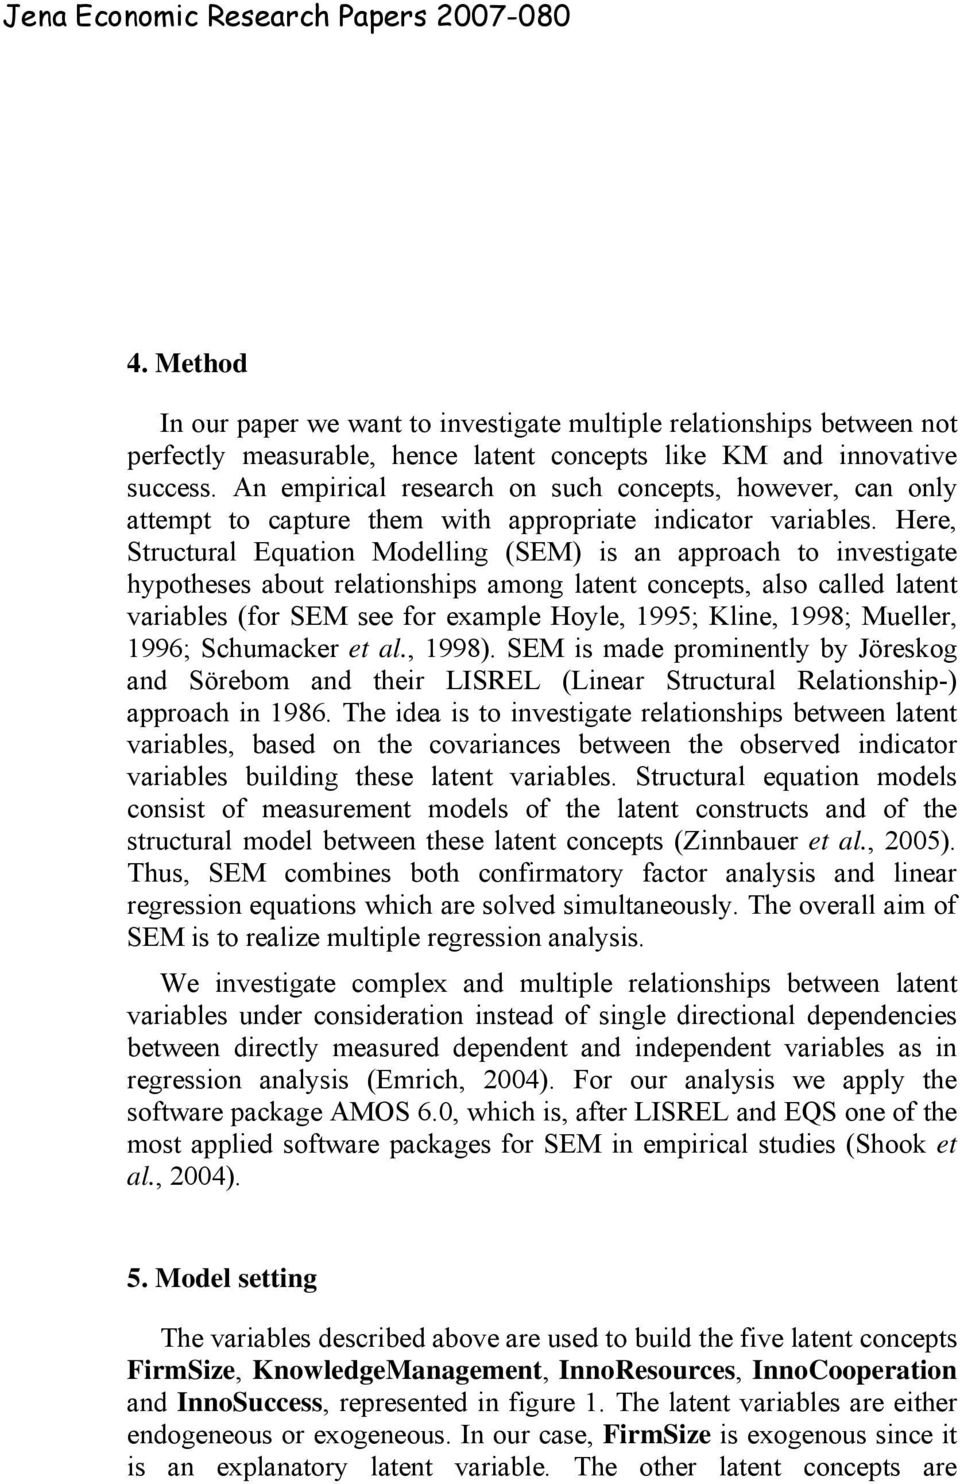 Here, Structural Equation Modelling (SEM) is an approach to investigate hypotheses about relationships among latent concepts, also called latent variables (for SEM see for example Hoyle, 1995; Kline,